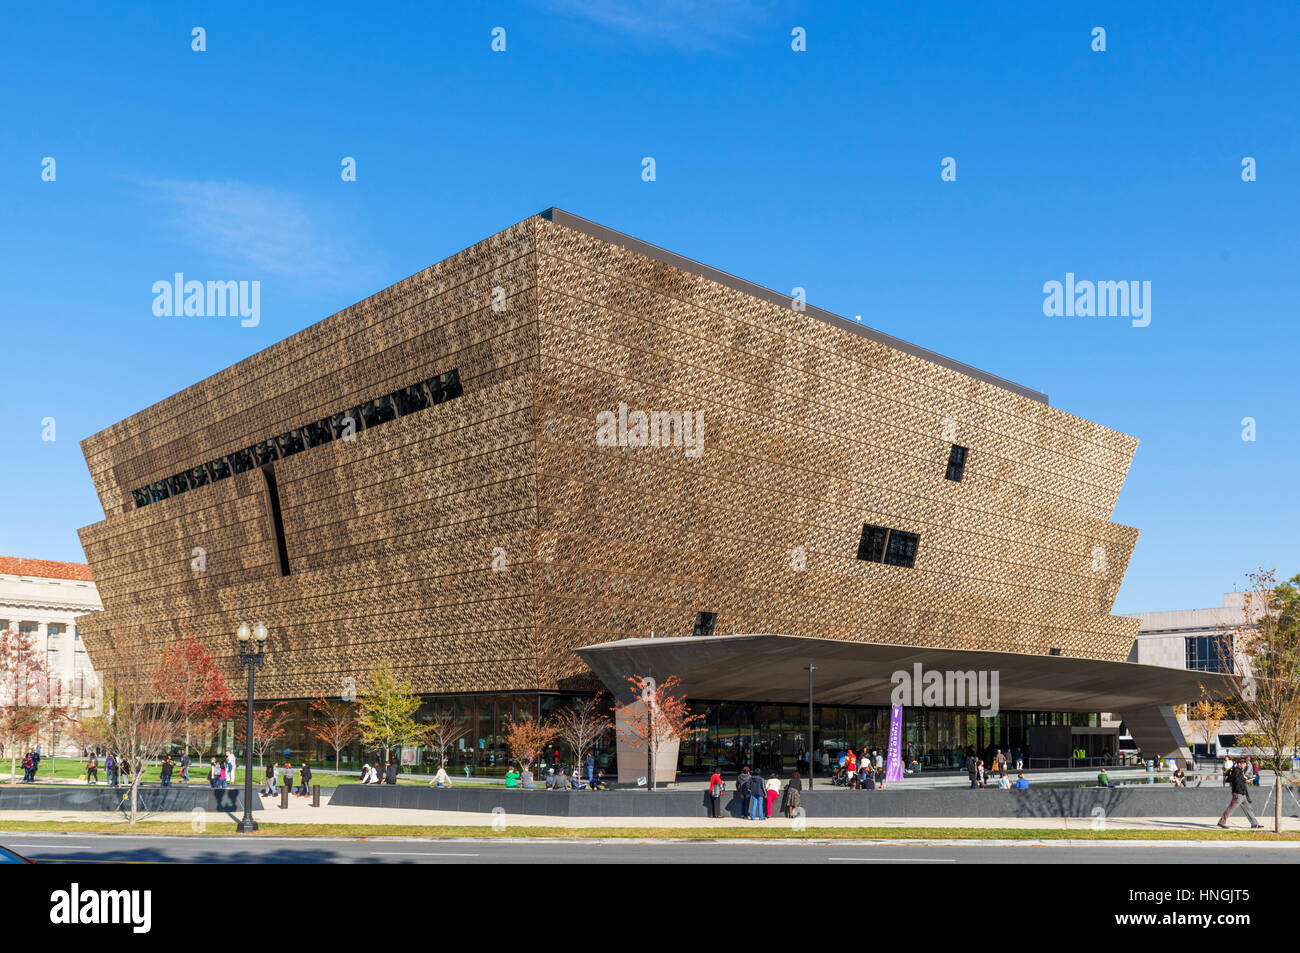 National Museum of African American History and Culture, National Mall, Washington DC, USA Stock Photo